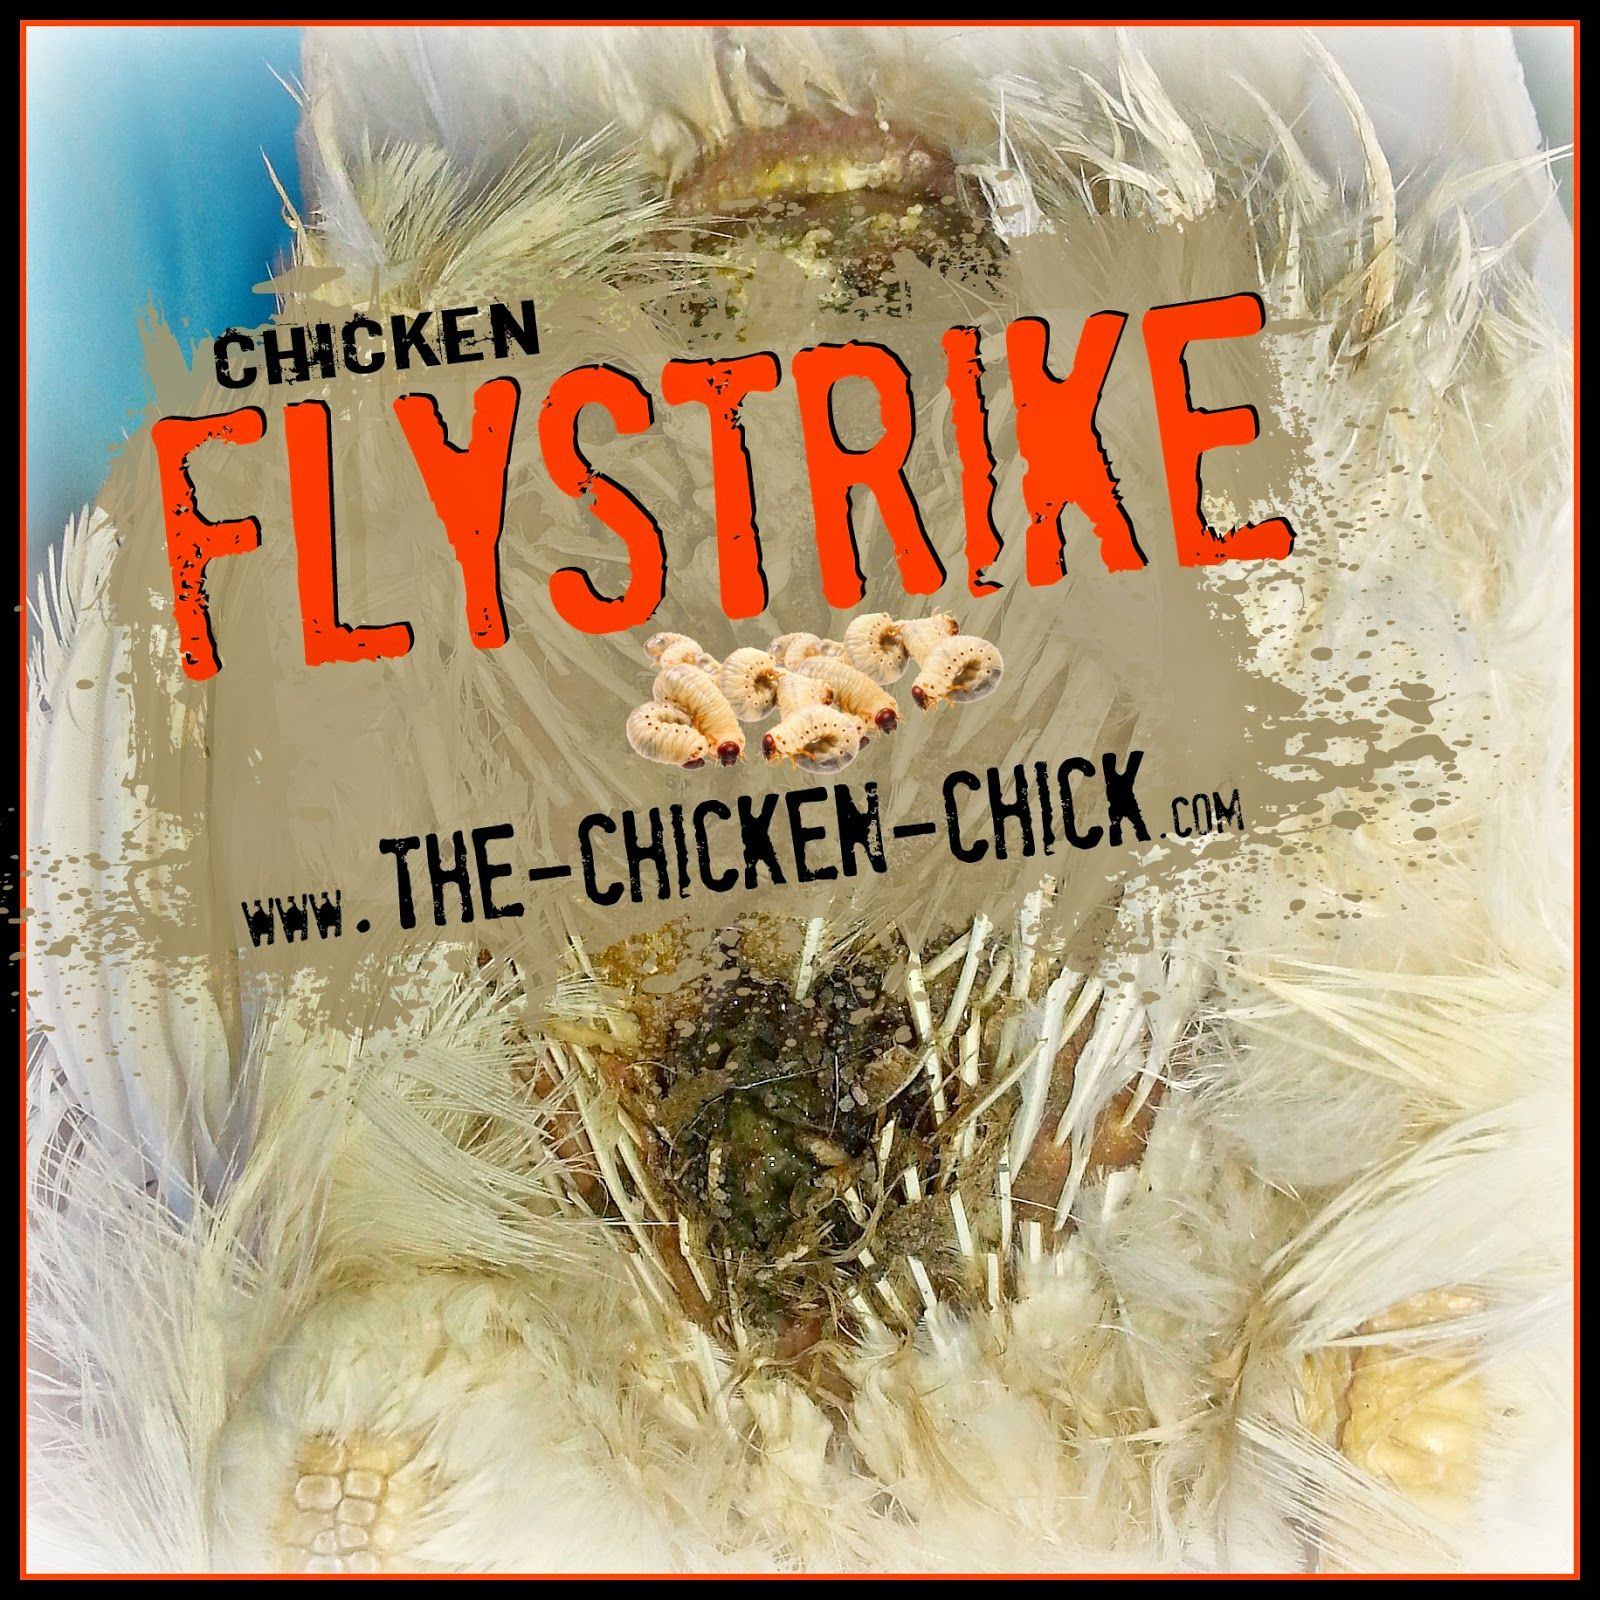 flystrike in backyard chickens causes prevention u0026 treatment